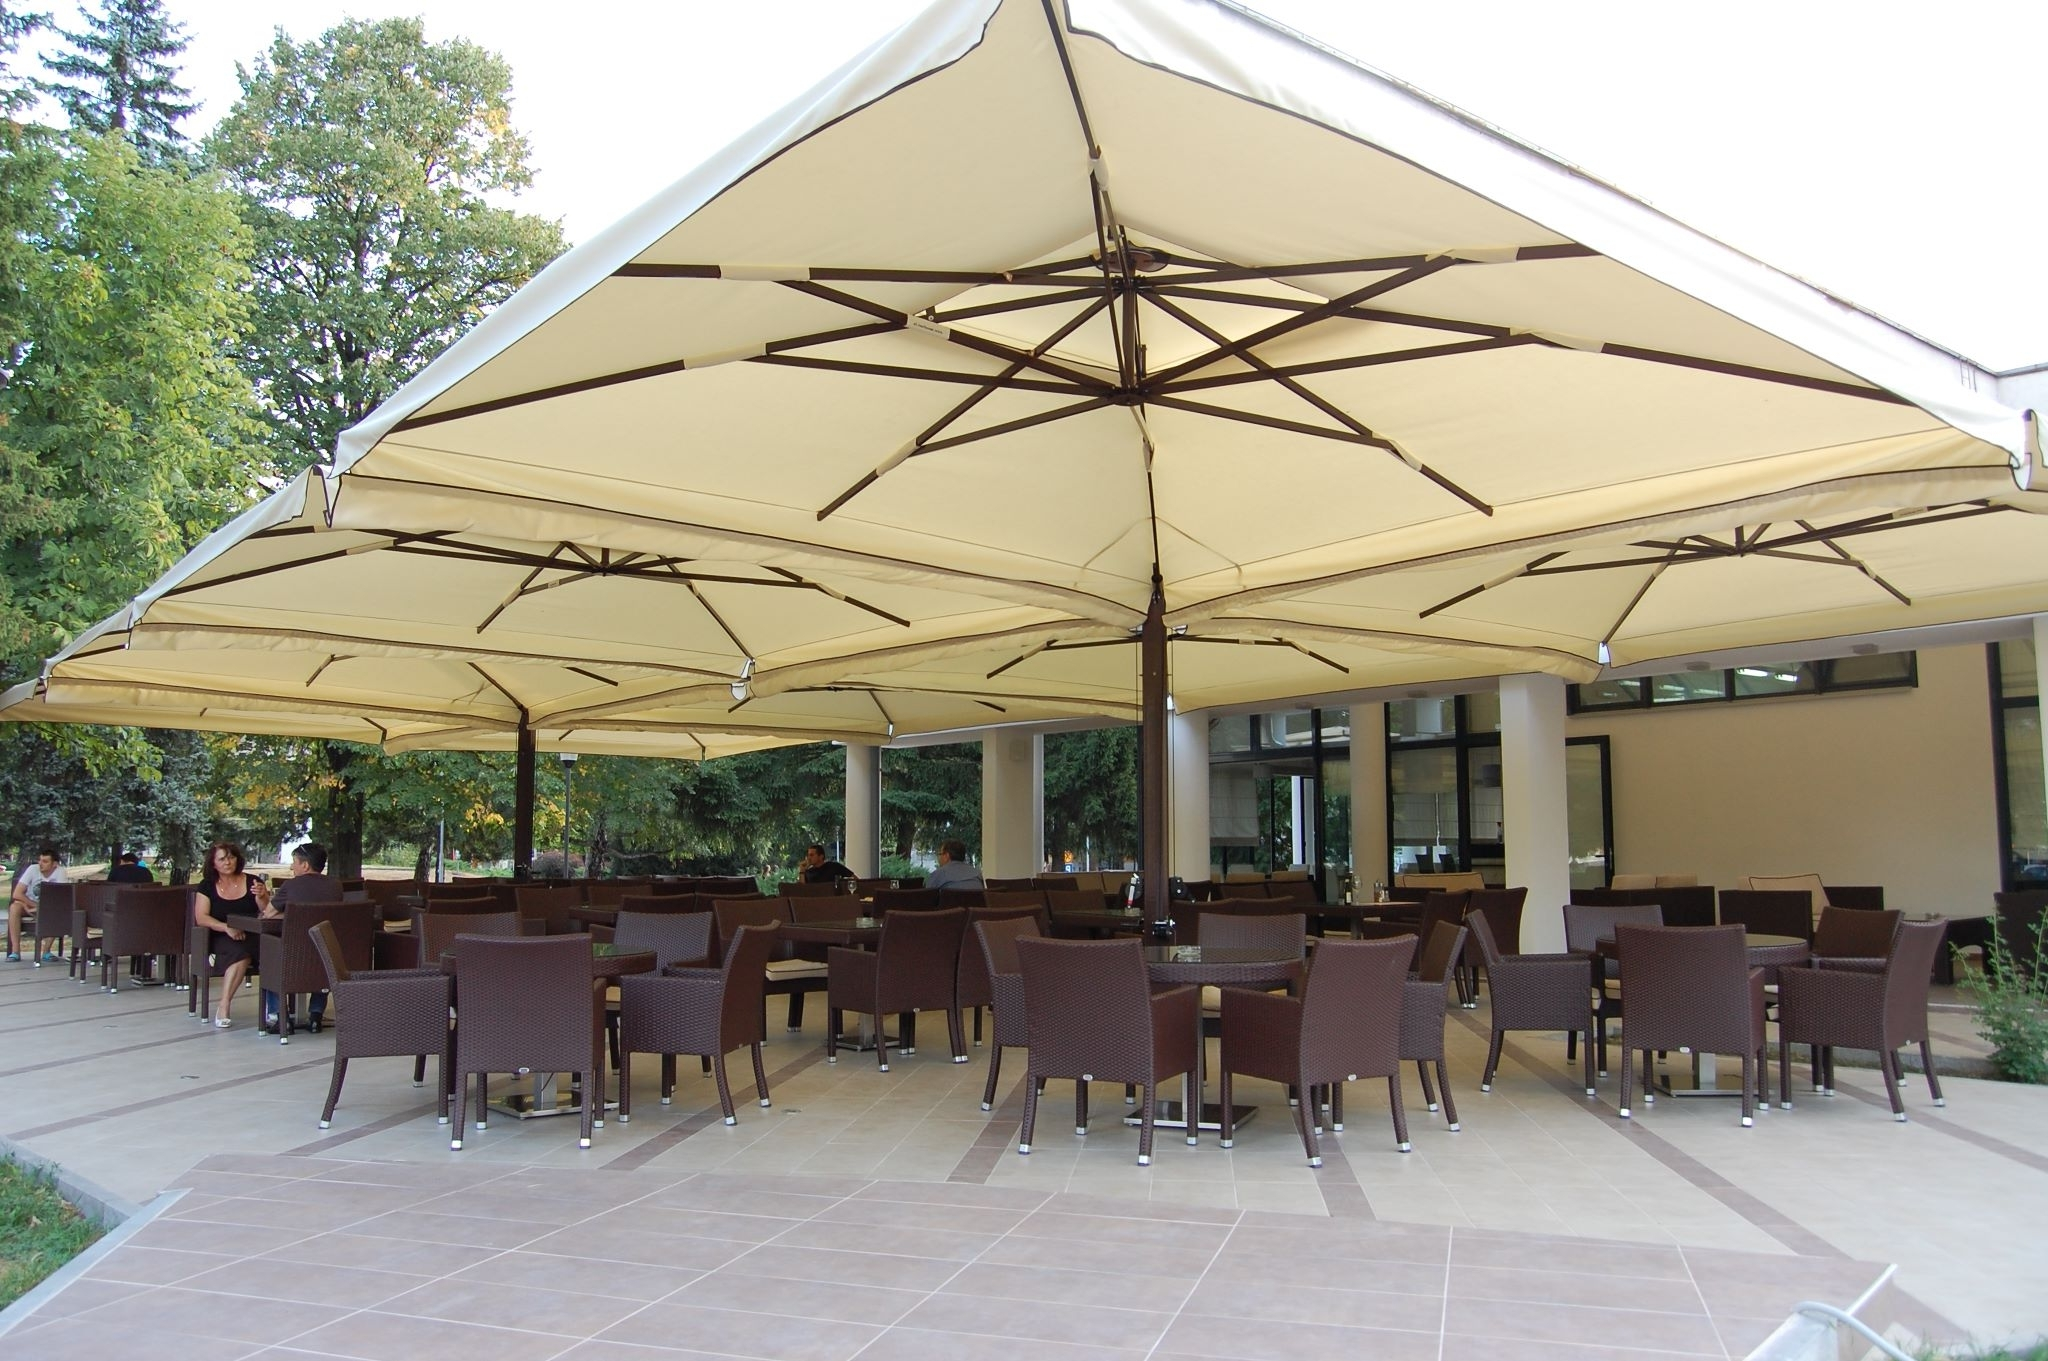 Well Known Commercial Patio Umbrellas For Restaurants, Resorts & Events With Regard To European Patio Umbrellas (View 2 of 20)